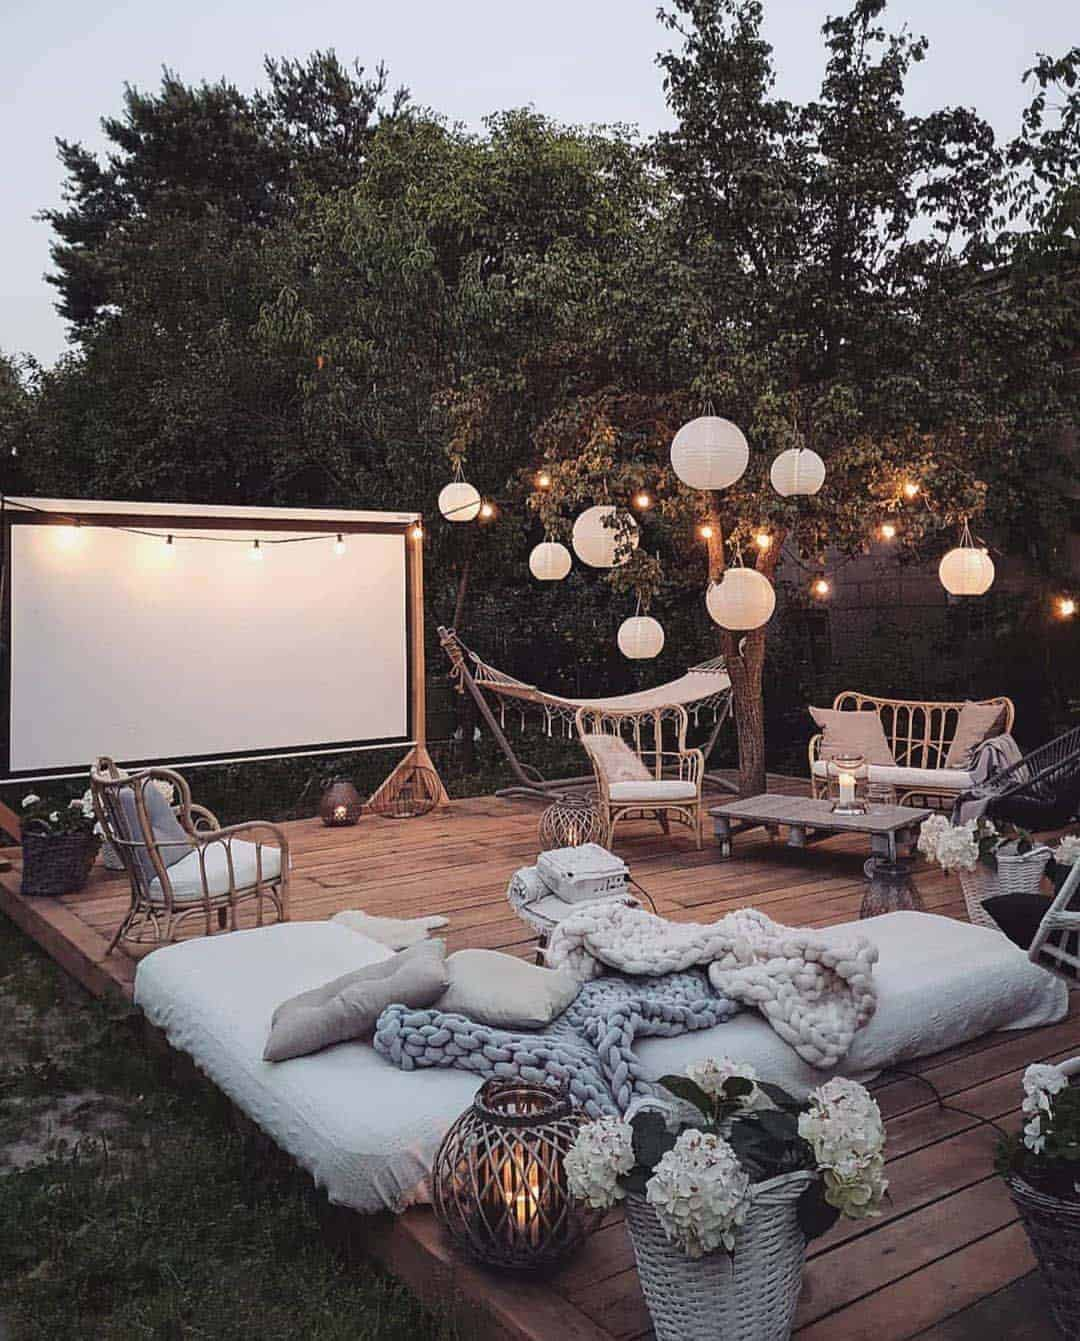 33 Fabulous Ideas For Creating Beautiful Outdoor Living Spaces on Backyard Outdoor Living Spaces id=91002